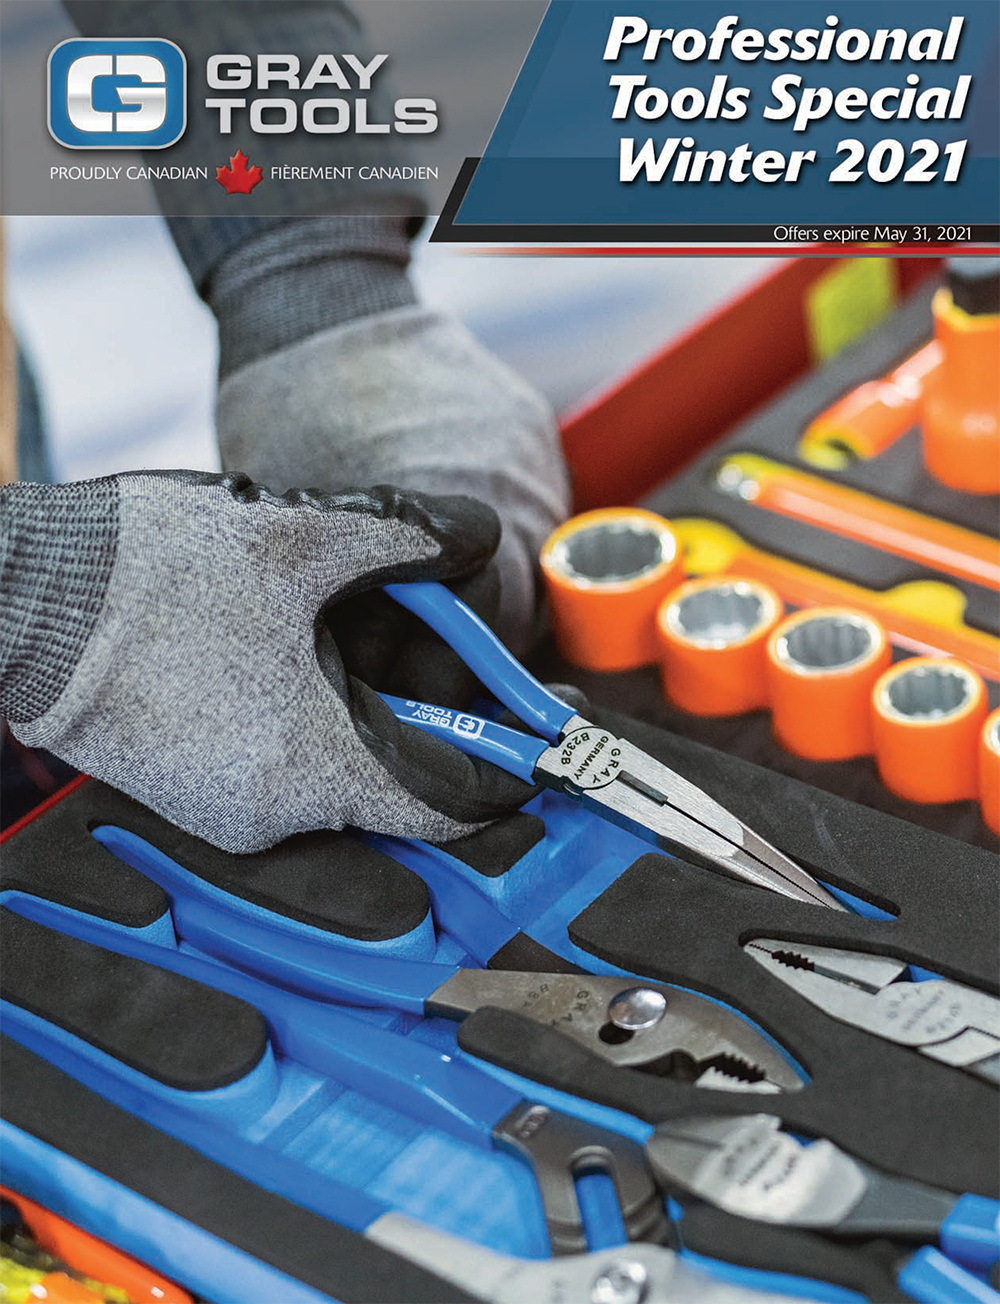 GRAY TOOLS PROFESSIONAL TOOLS SPECIAL WINTER 2021